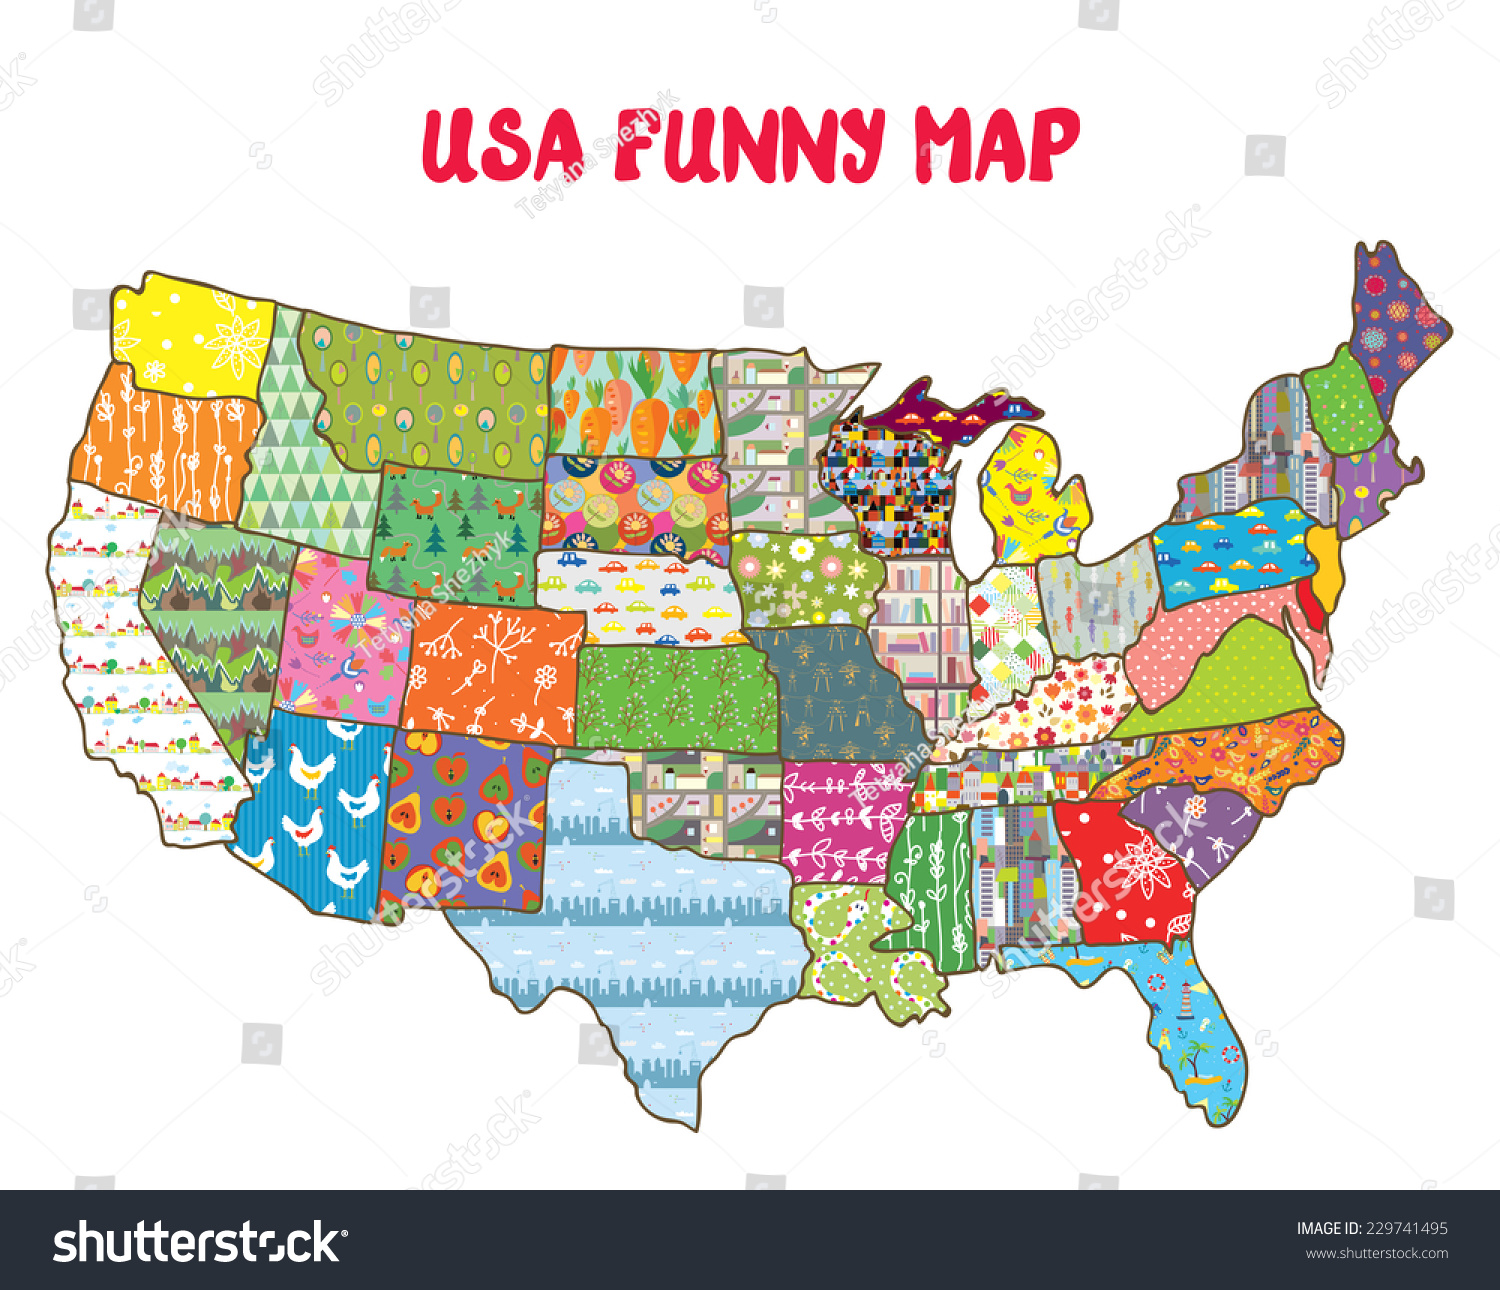 United States Funny Map With Patterns Vector Design For